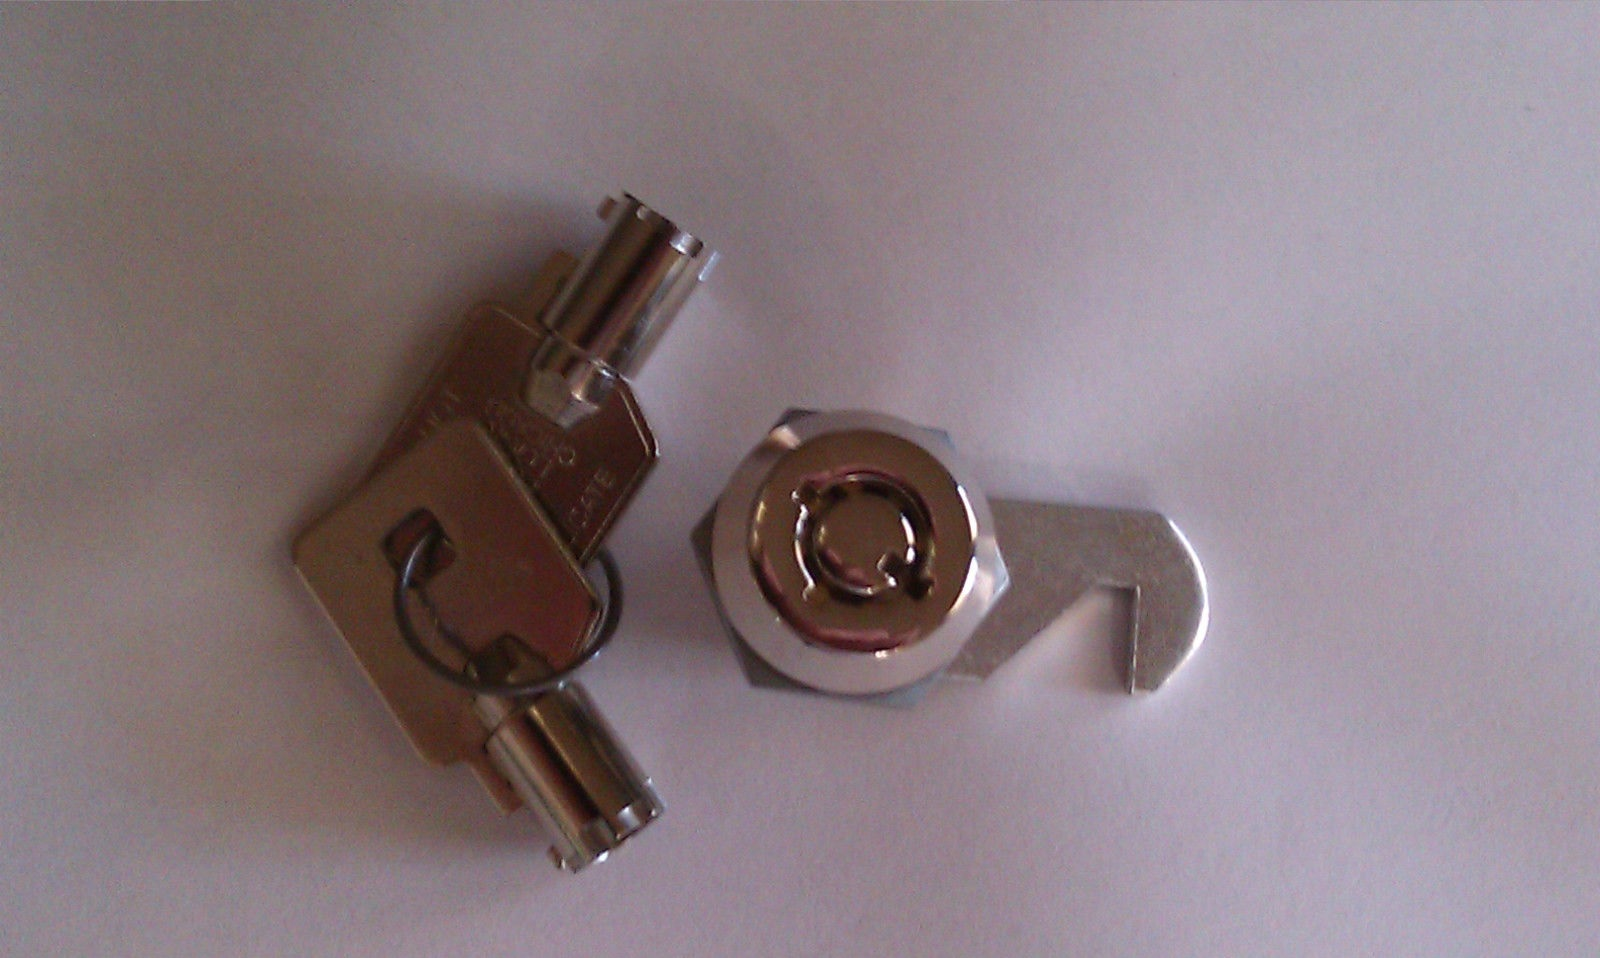 Truck Tool Box Lock Replacement >> Kennedy Tool Box Lock Standard Cylinder Hook Cam [MFW1012] - $16.50 : Motorcycle Key Blanks ...